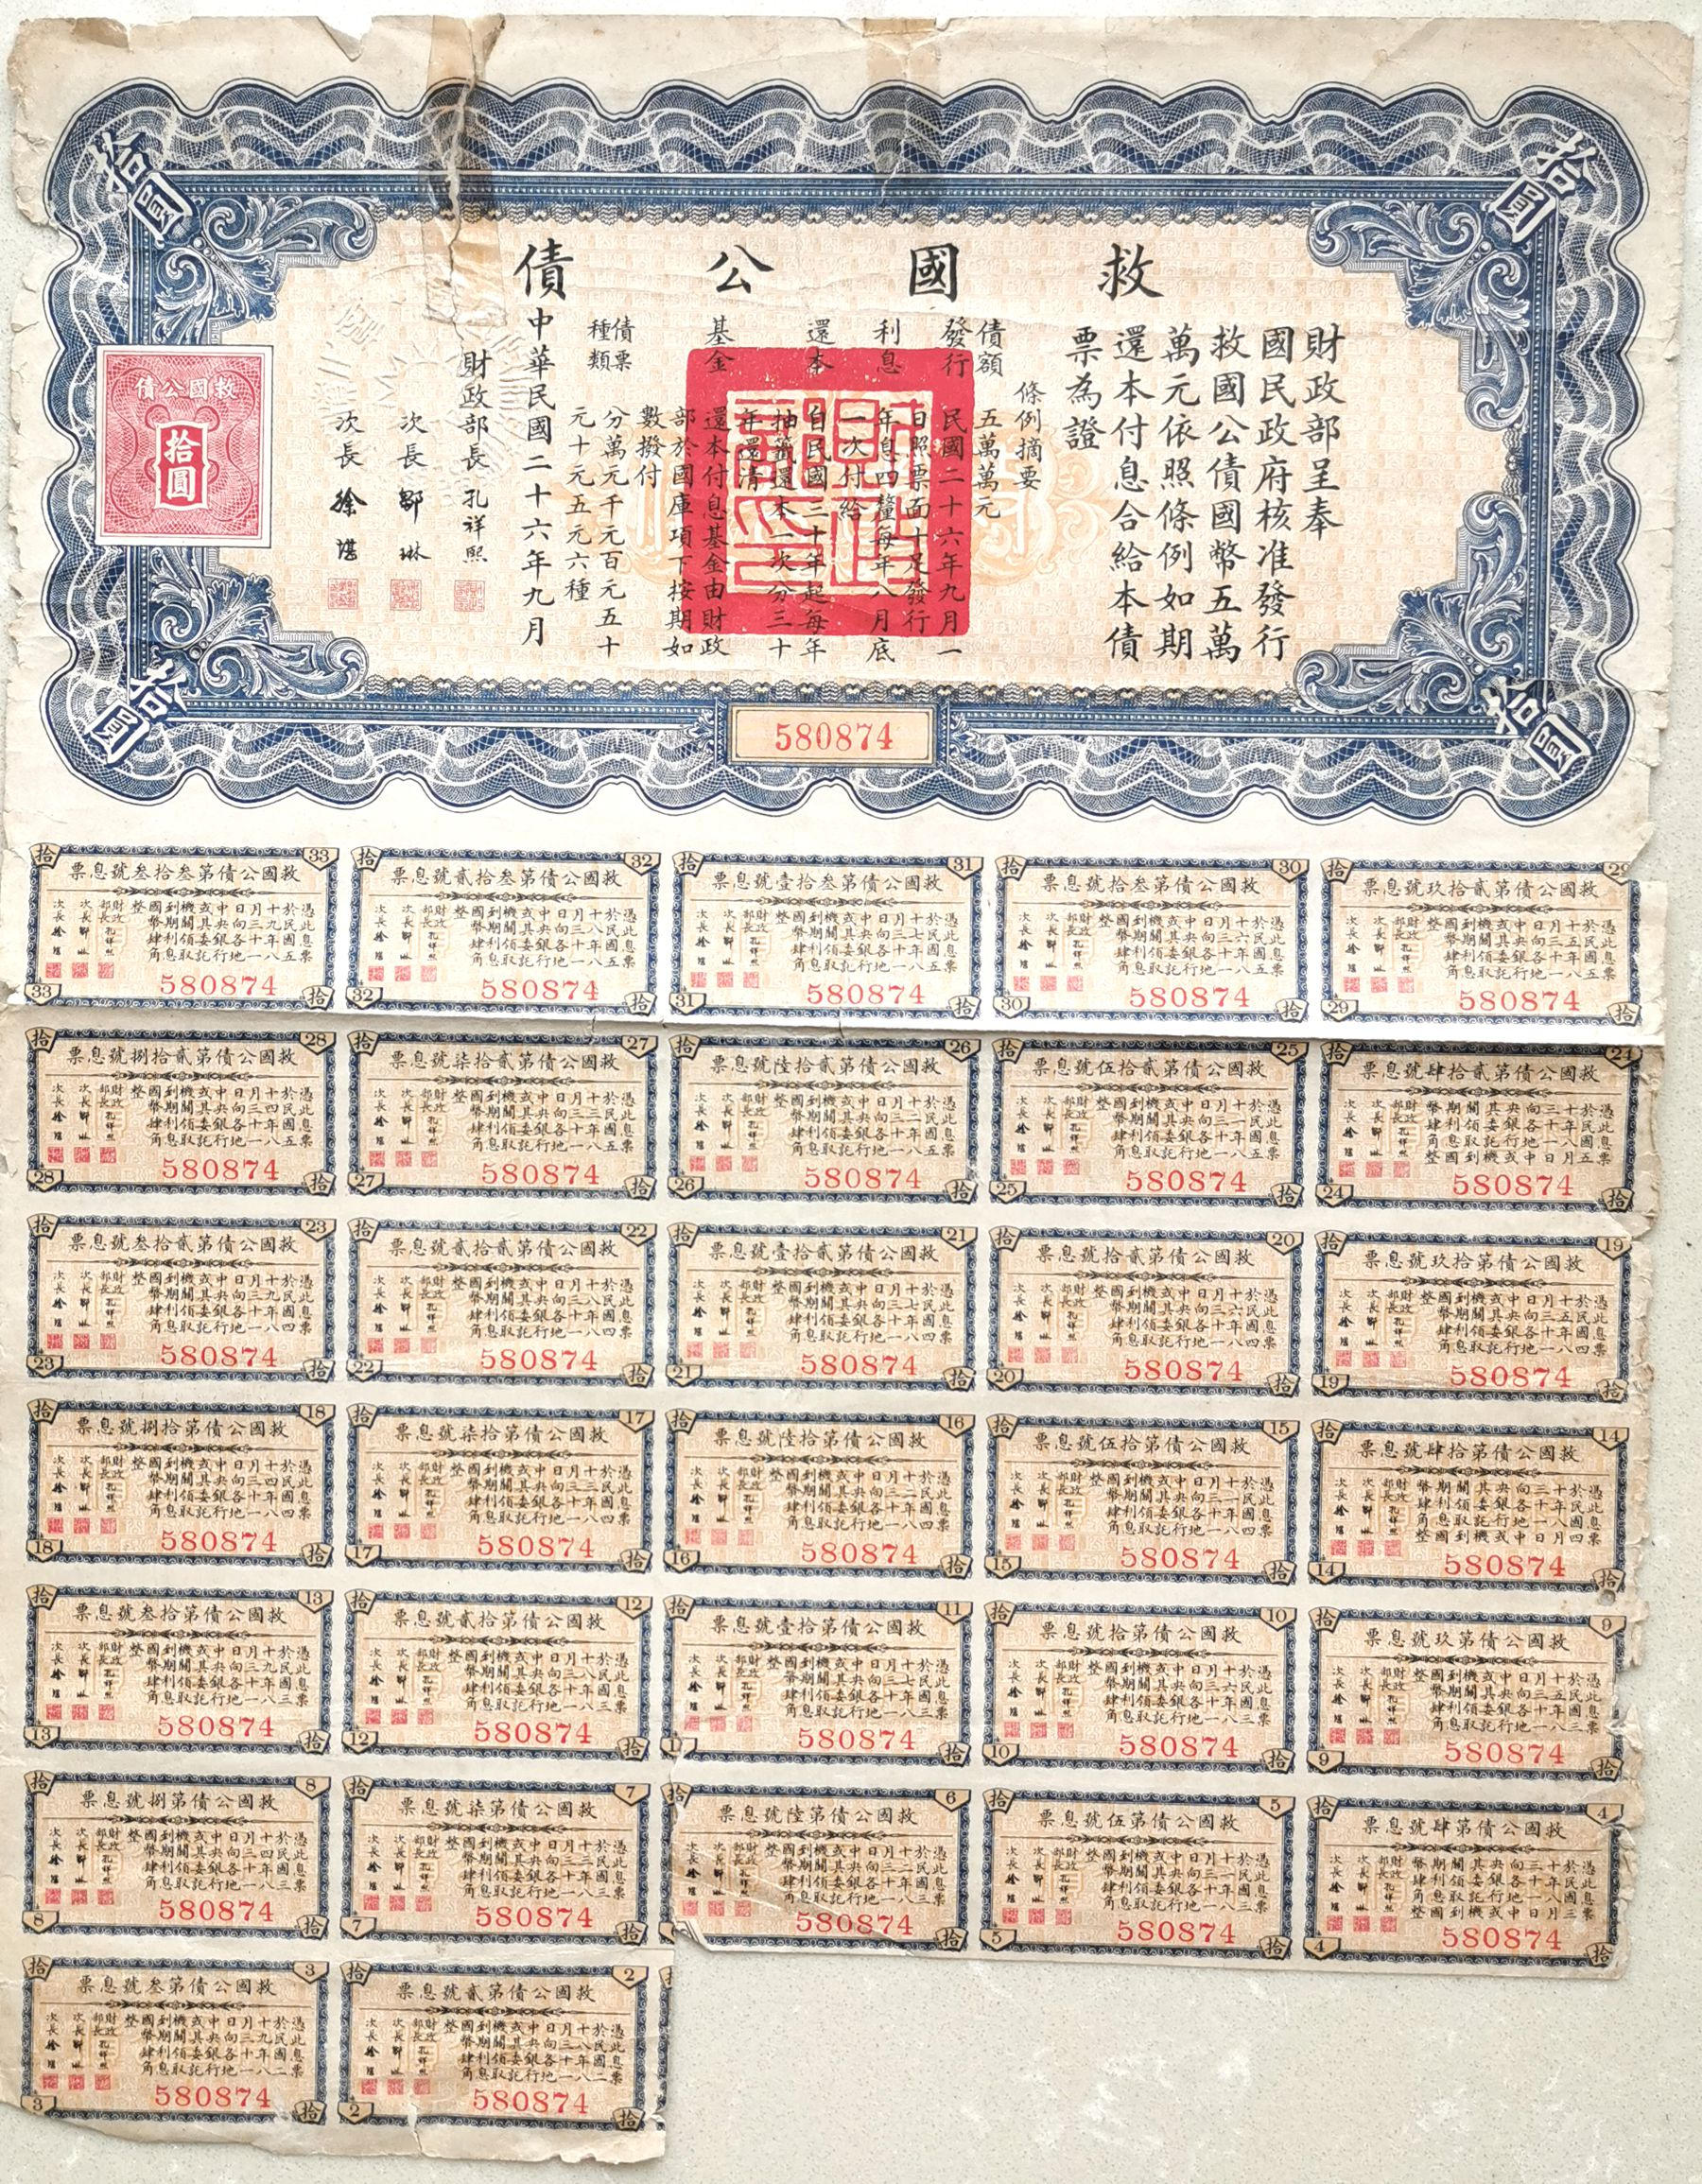 B2017, Liberty Bond of China, 5 Dollars with Three Revenues, 1937 Loan